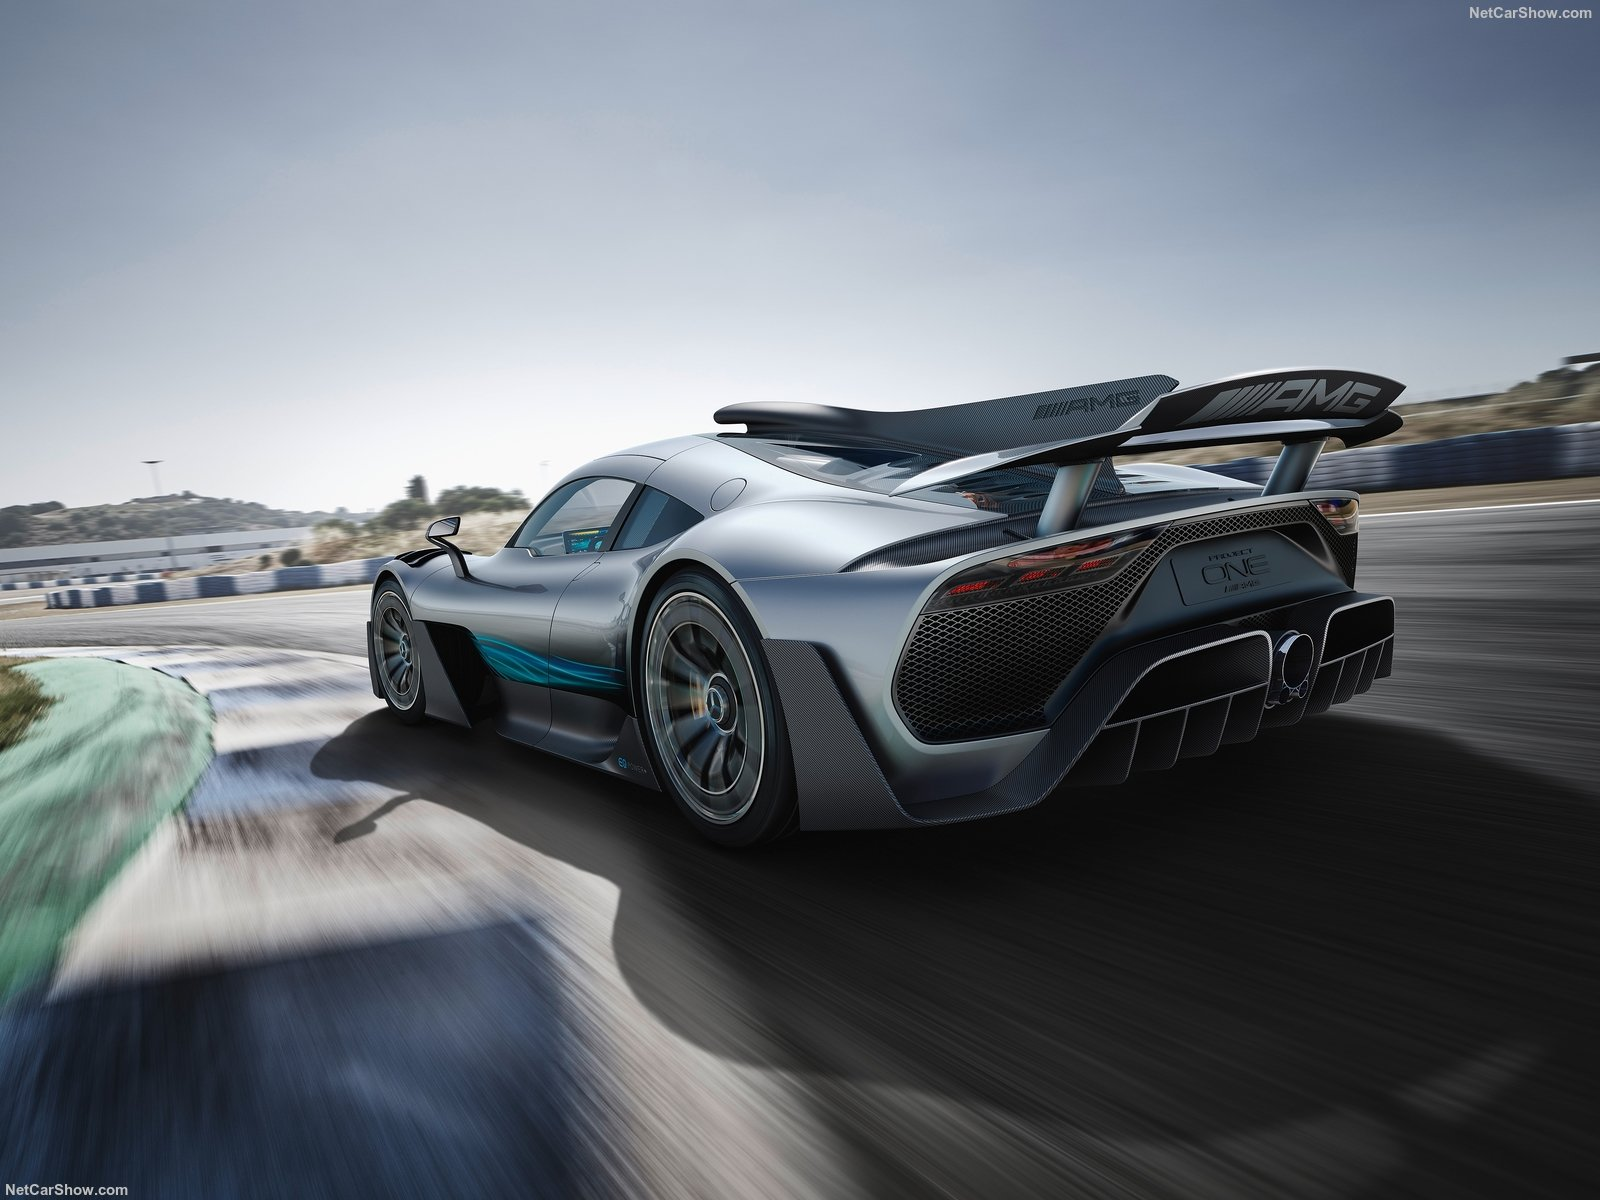 mercedes-benz-amg_project_one_concept-2017-1600-05